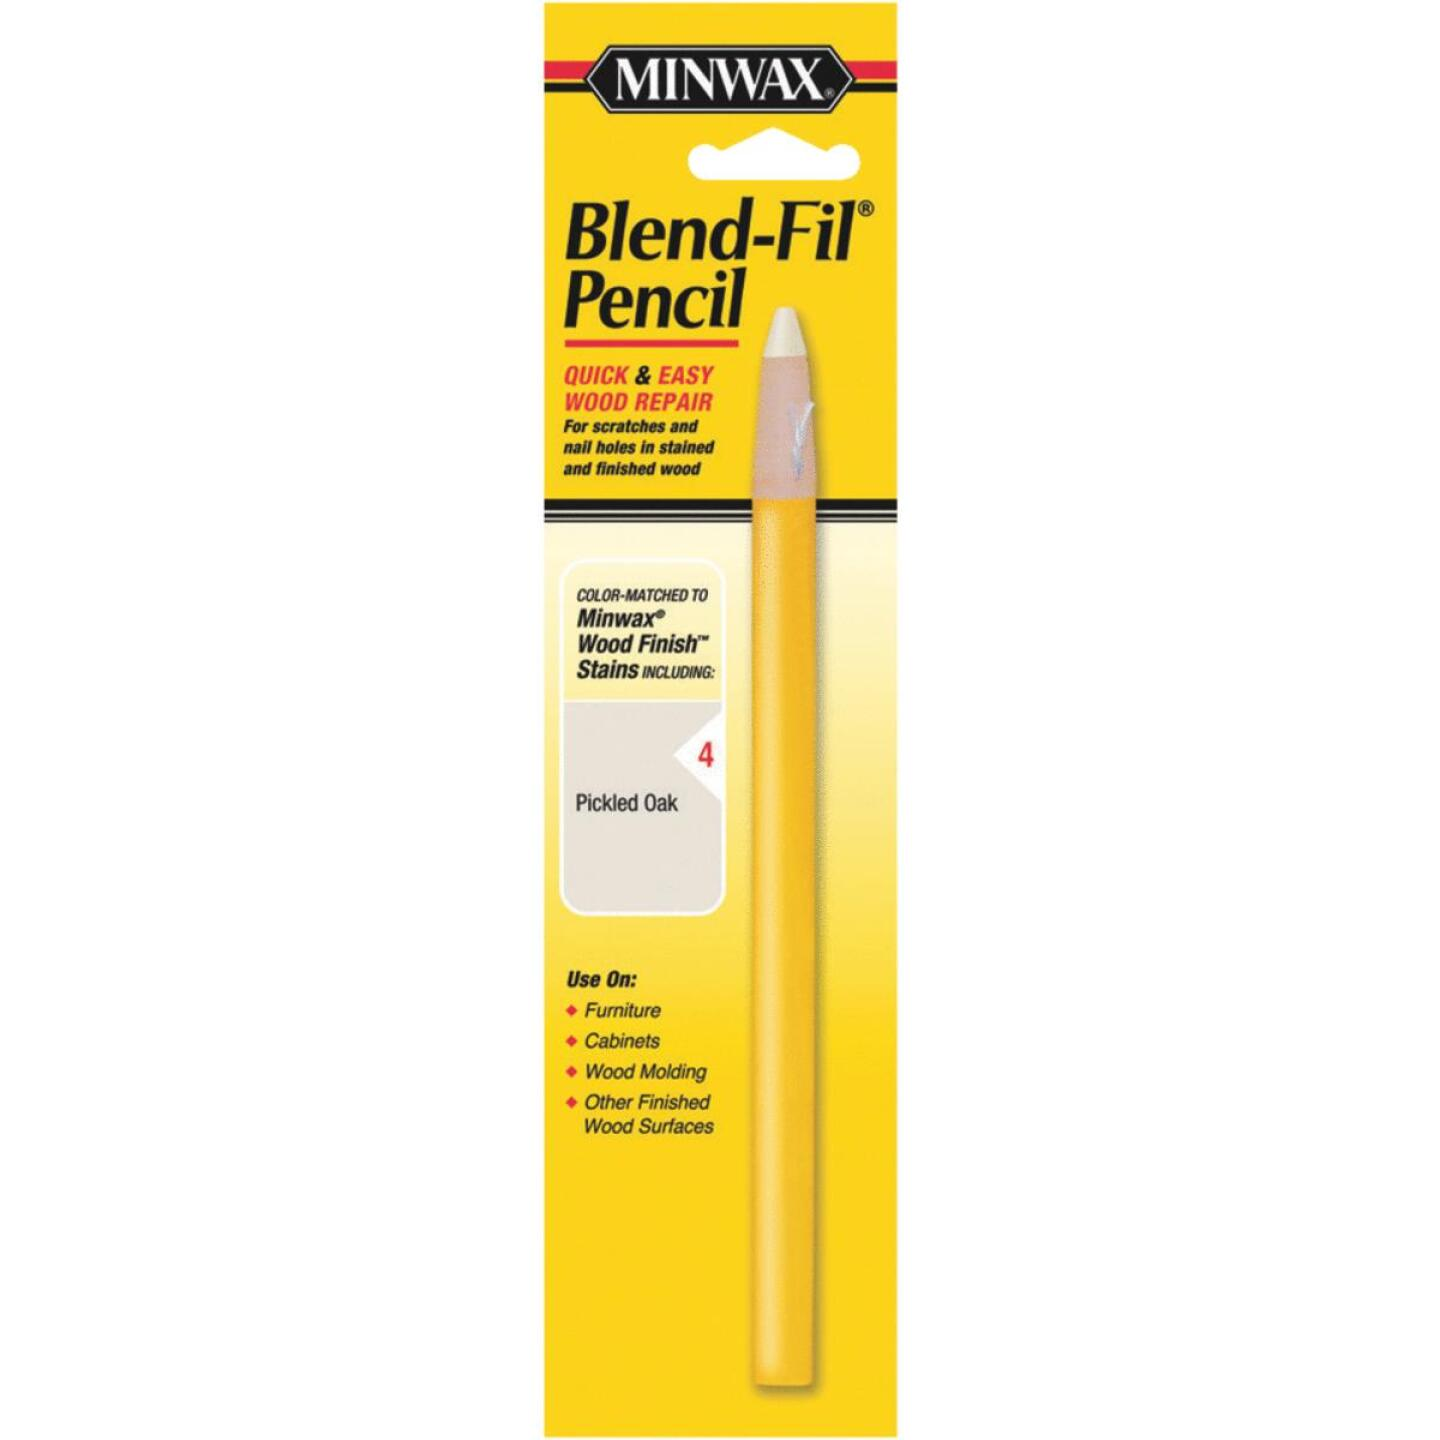 Minwax Blend-Fil Color Group 4 Touch-Up Pencil Image 1